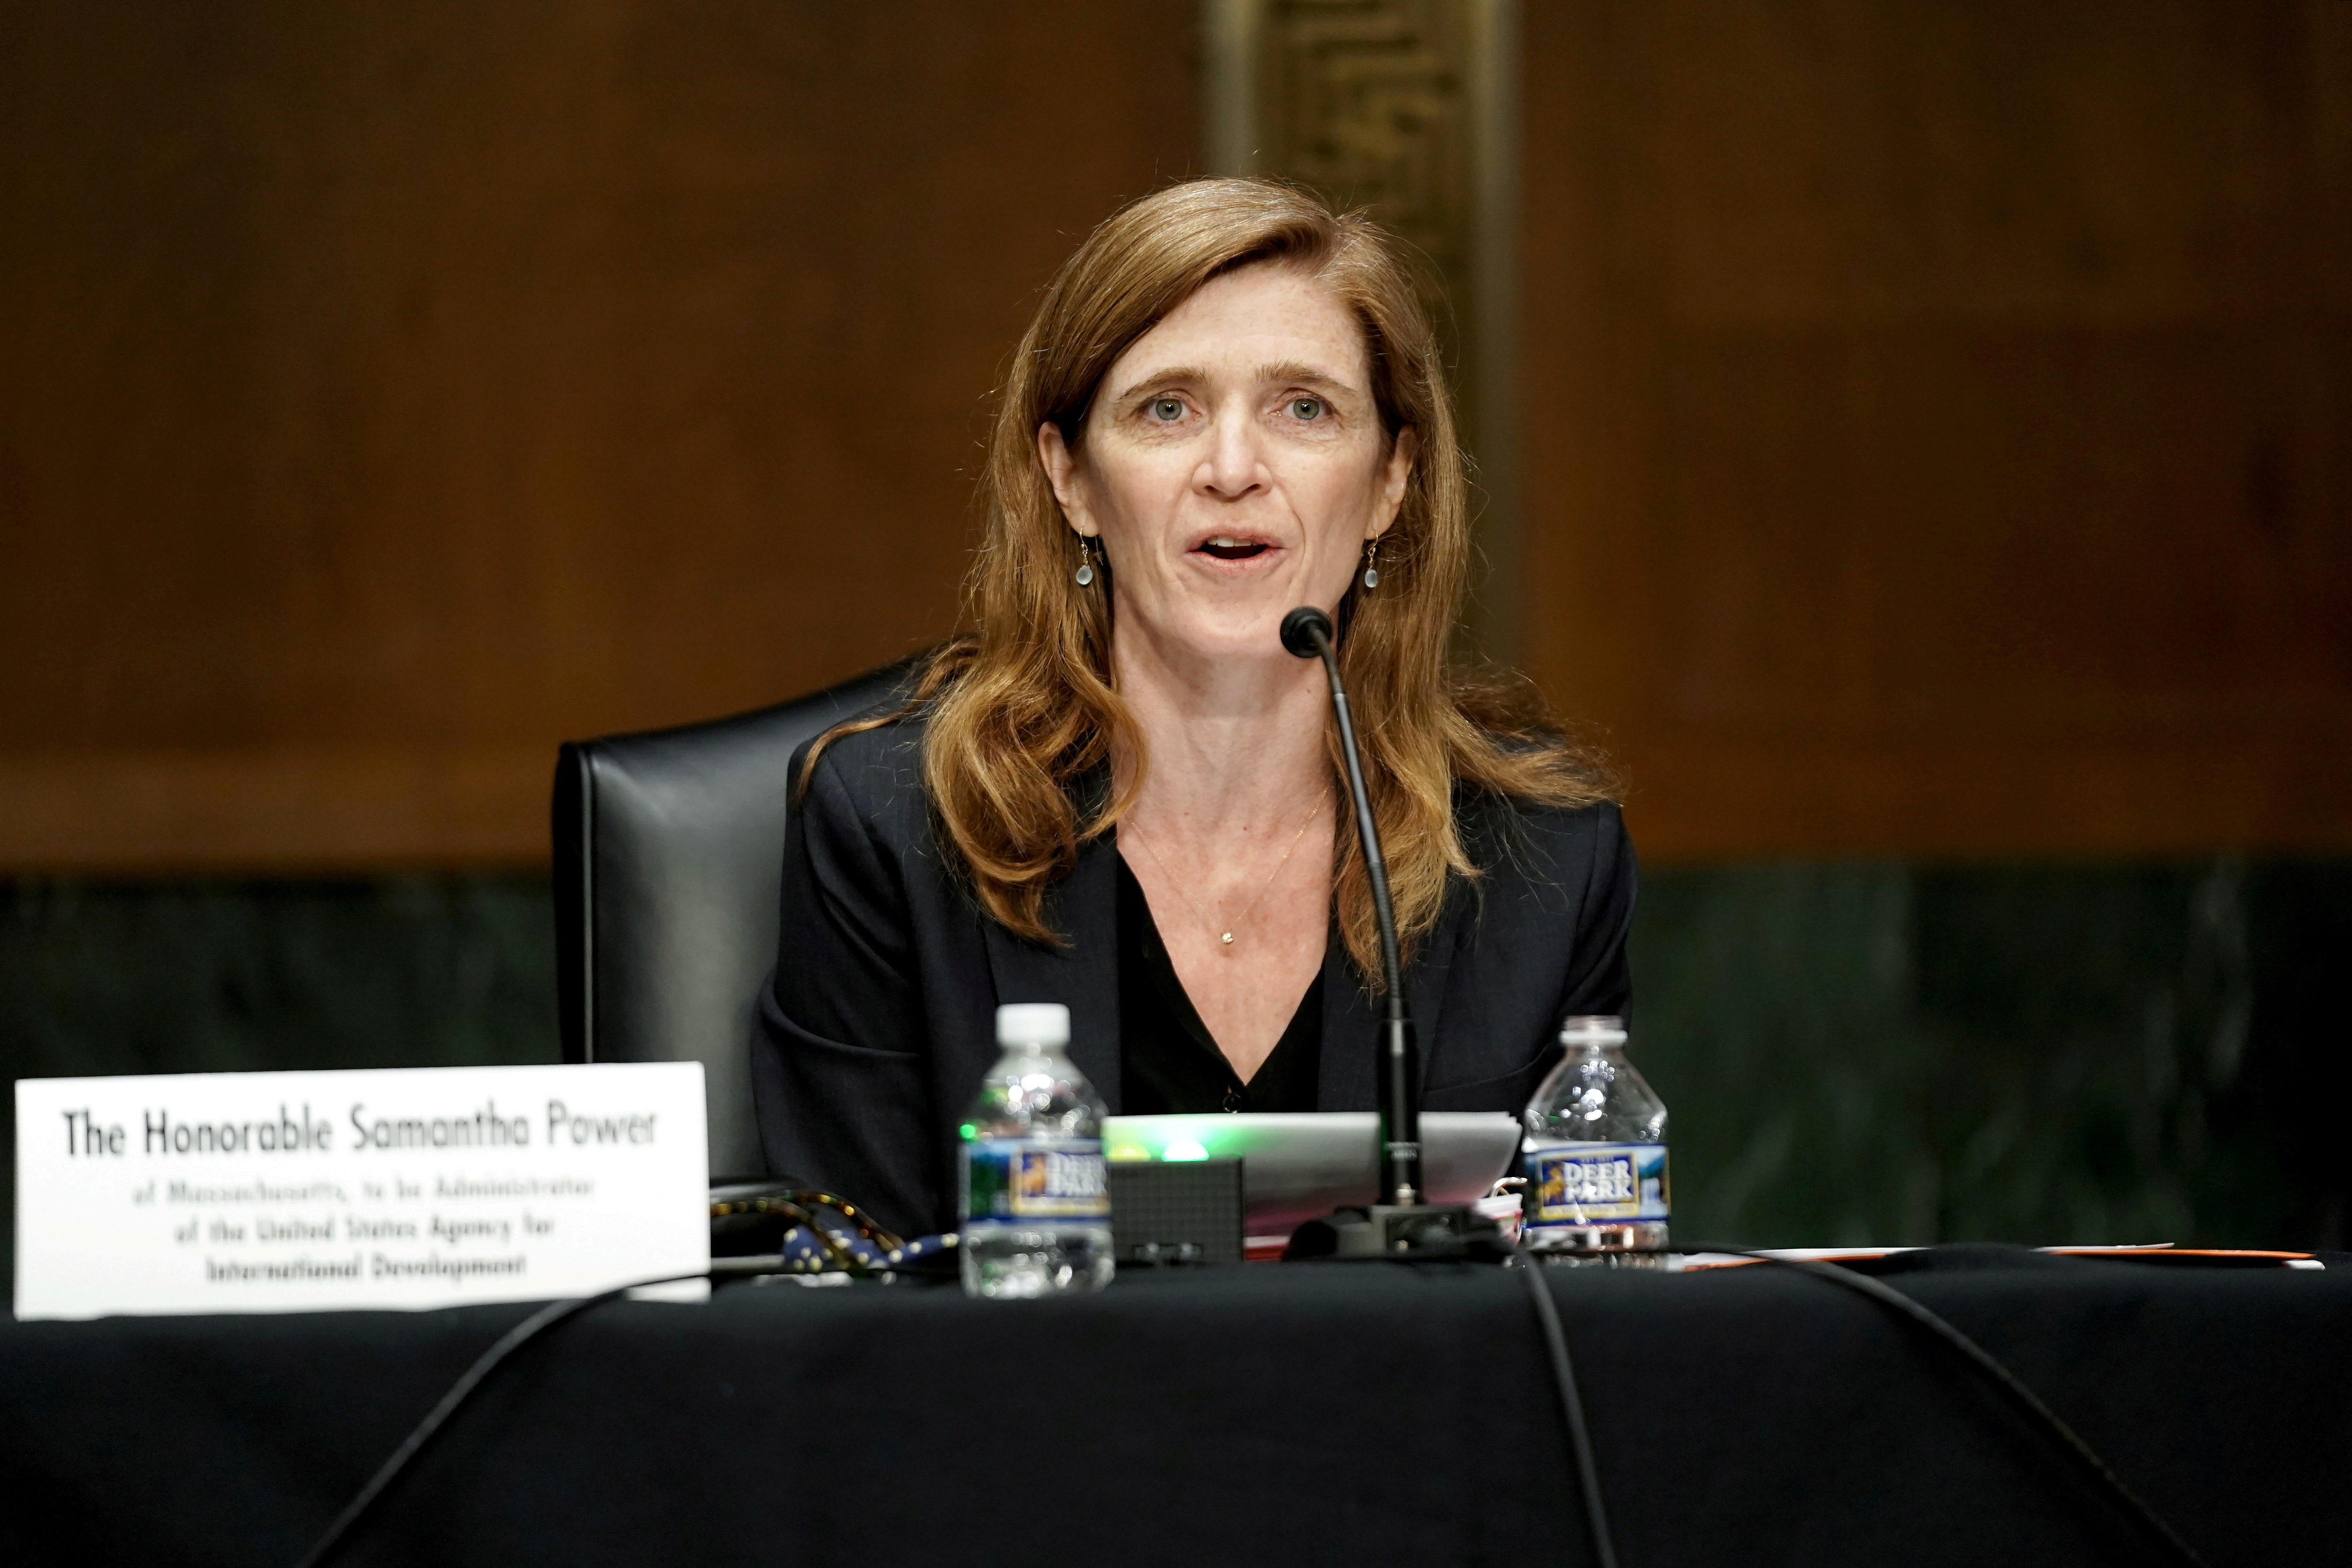 Former U.S. Ambassador to the United Nations Samantha Power, who is President Joe Biden's choice to lead the U.S. Agency for International Development, attends a U.S. Senate Foreign Relations Committee confirmation hearing in Washington, DC, U.S., March 23, 2021. Greg Nash/Pool via REUTERS/File Photo